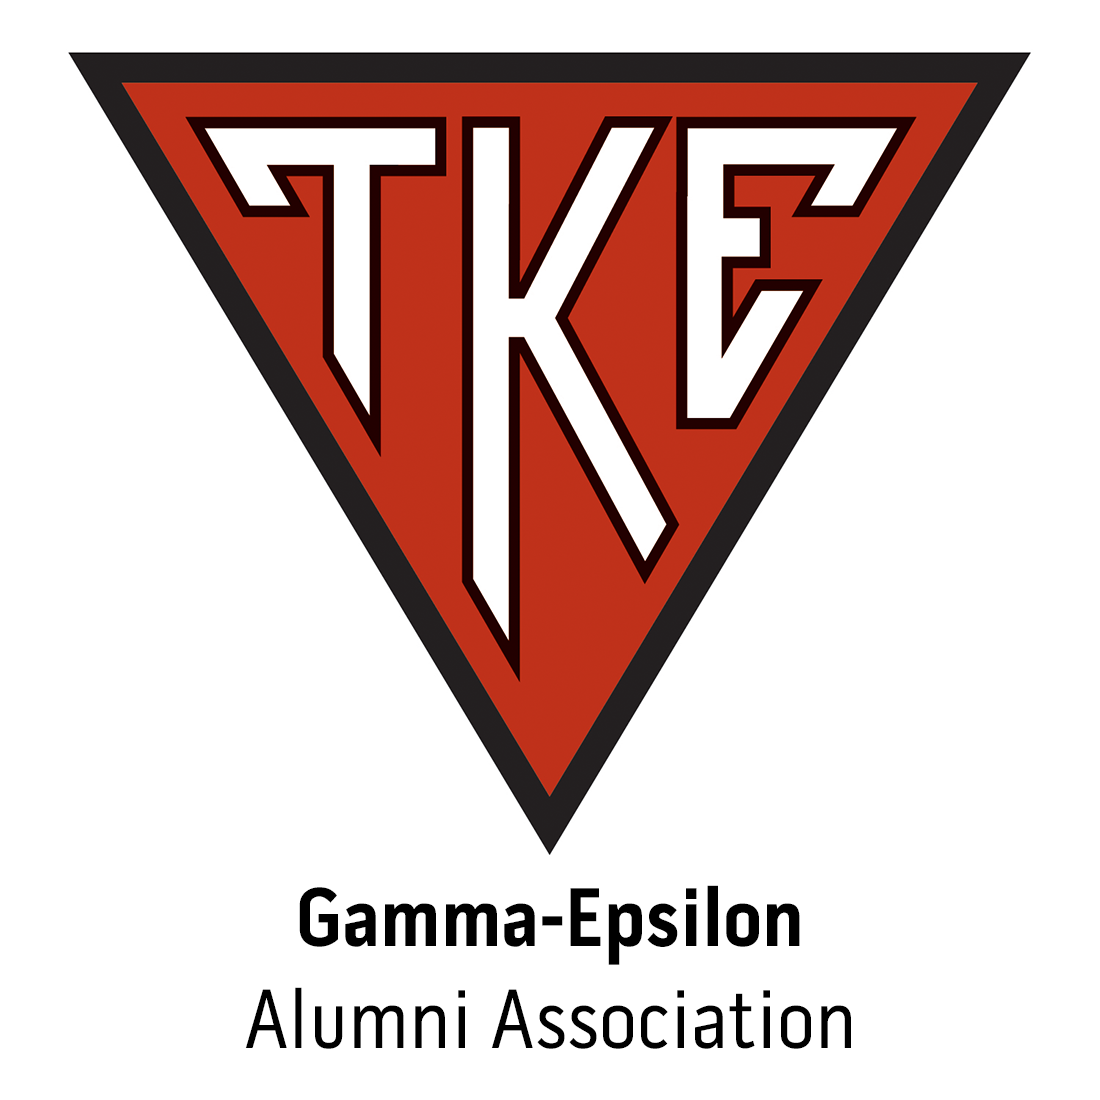 Gamma-Epsilon Alumni Association at Rensselaer Polytechnic Institute